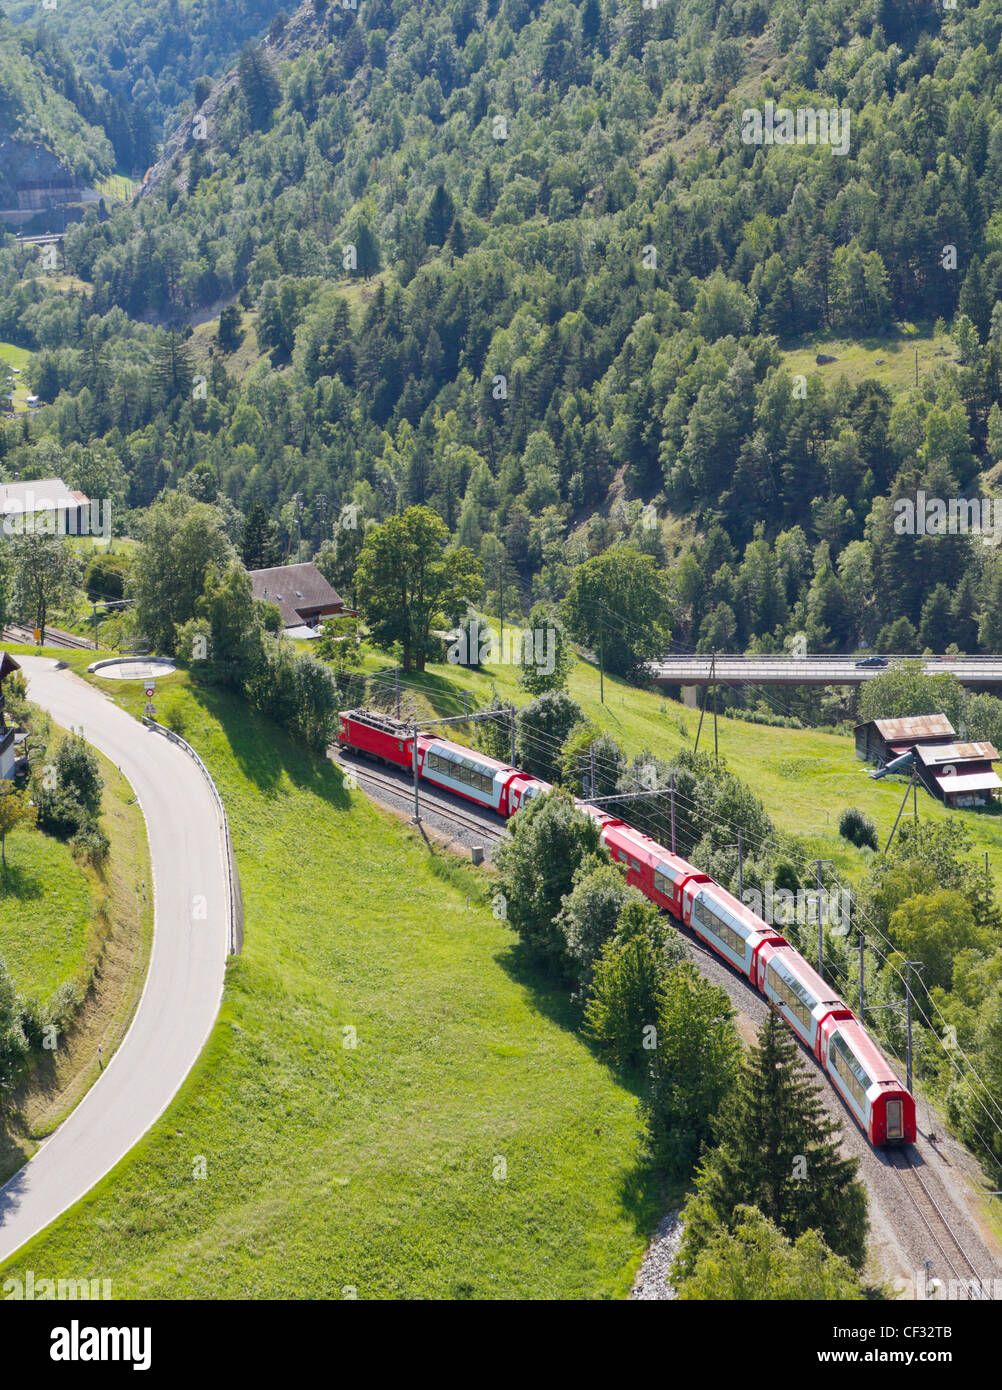 aerial view on glacier express panorama train crossing green rural valley, Vallais, Switzerland - Stock Image